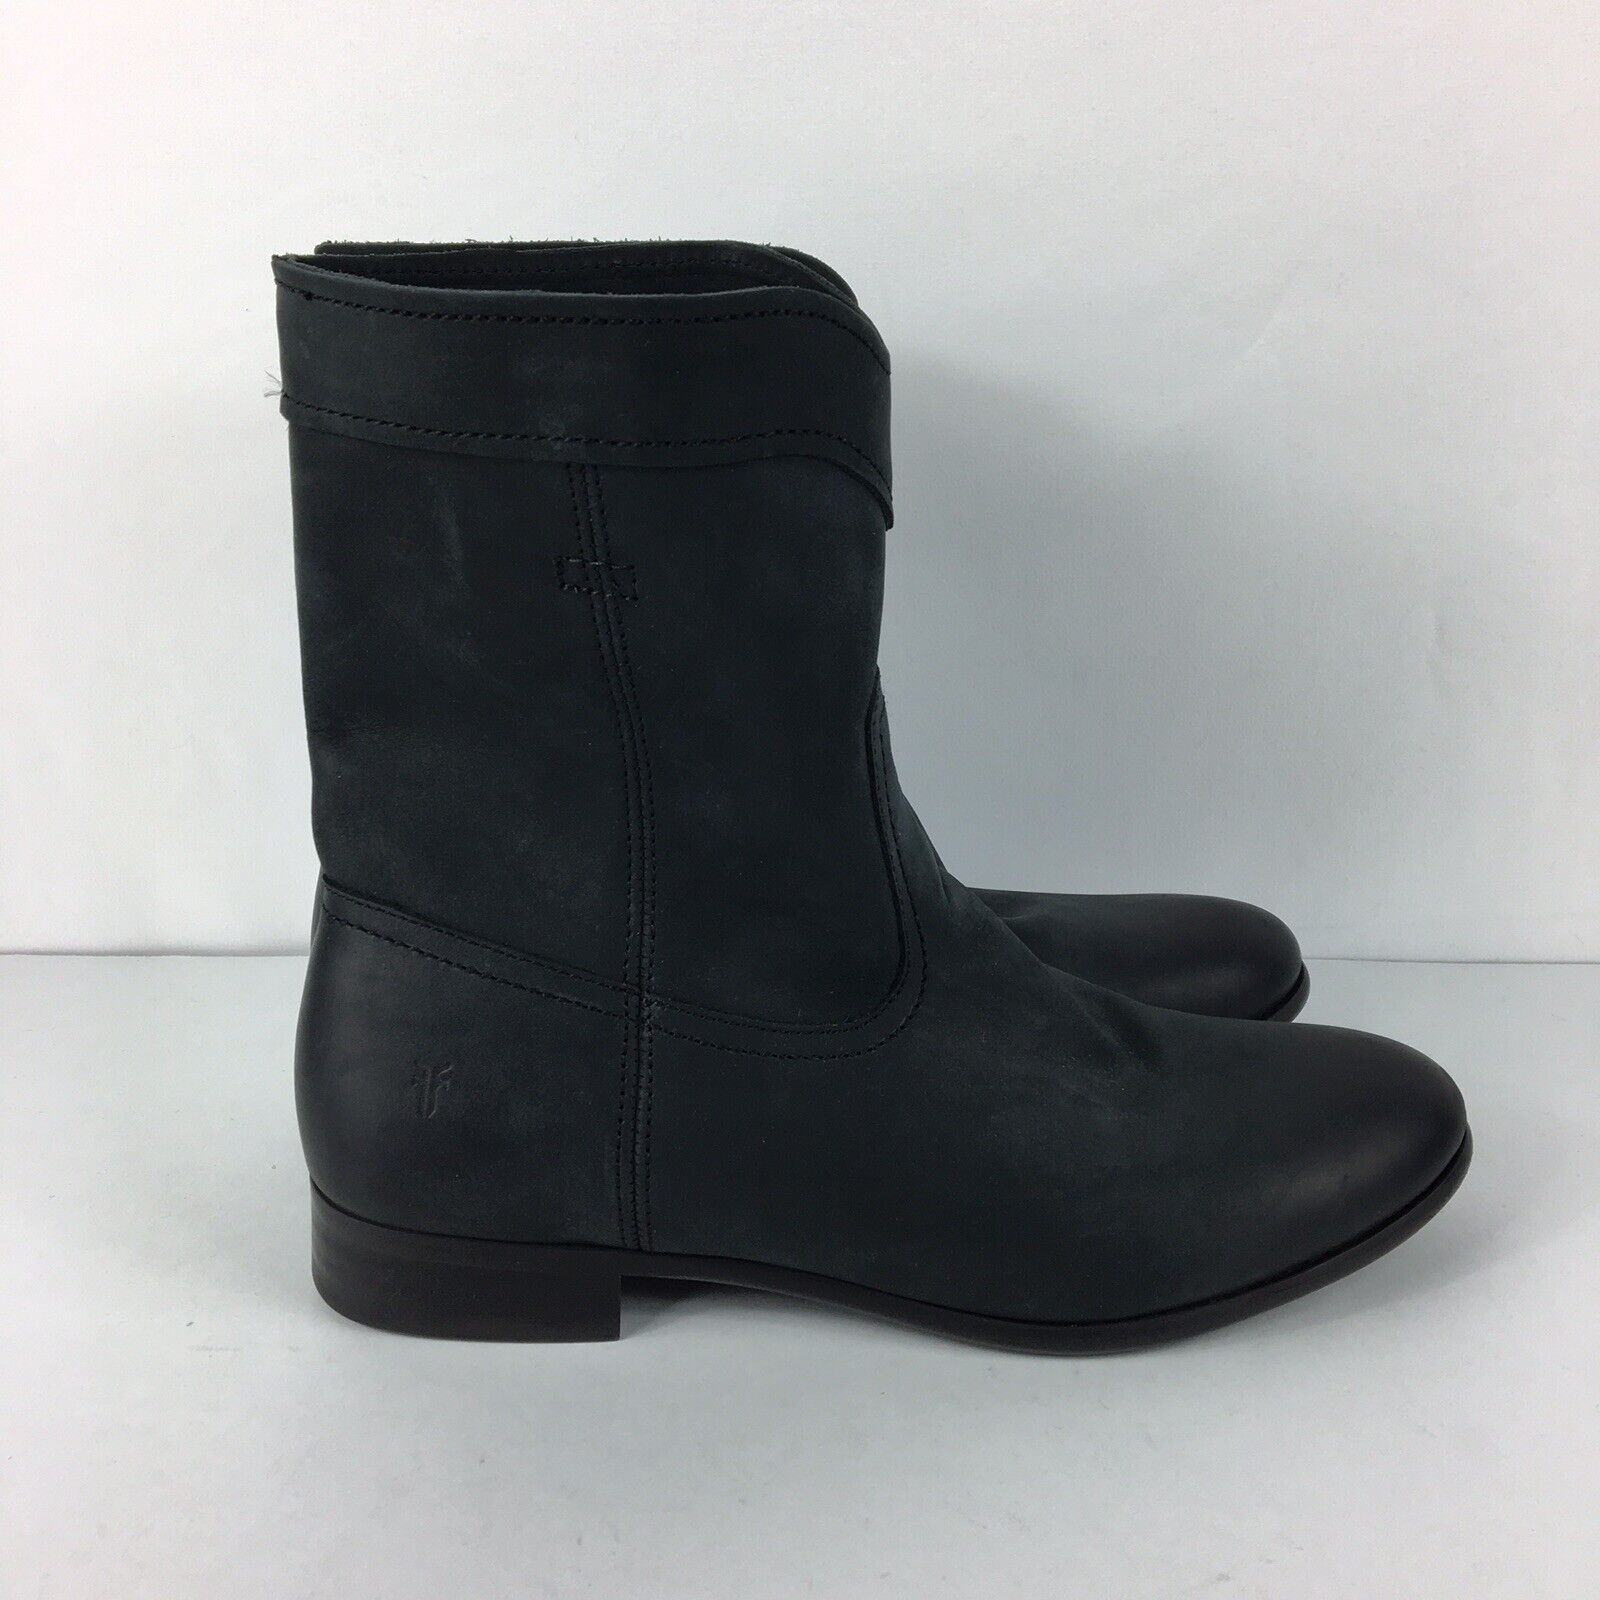 Frye Cara Roper Short Riding Boots Womens Leather Cowboy Round Toe Black Sz 7.5